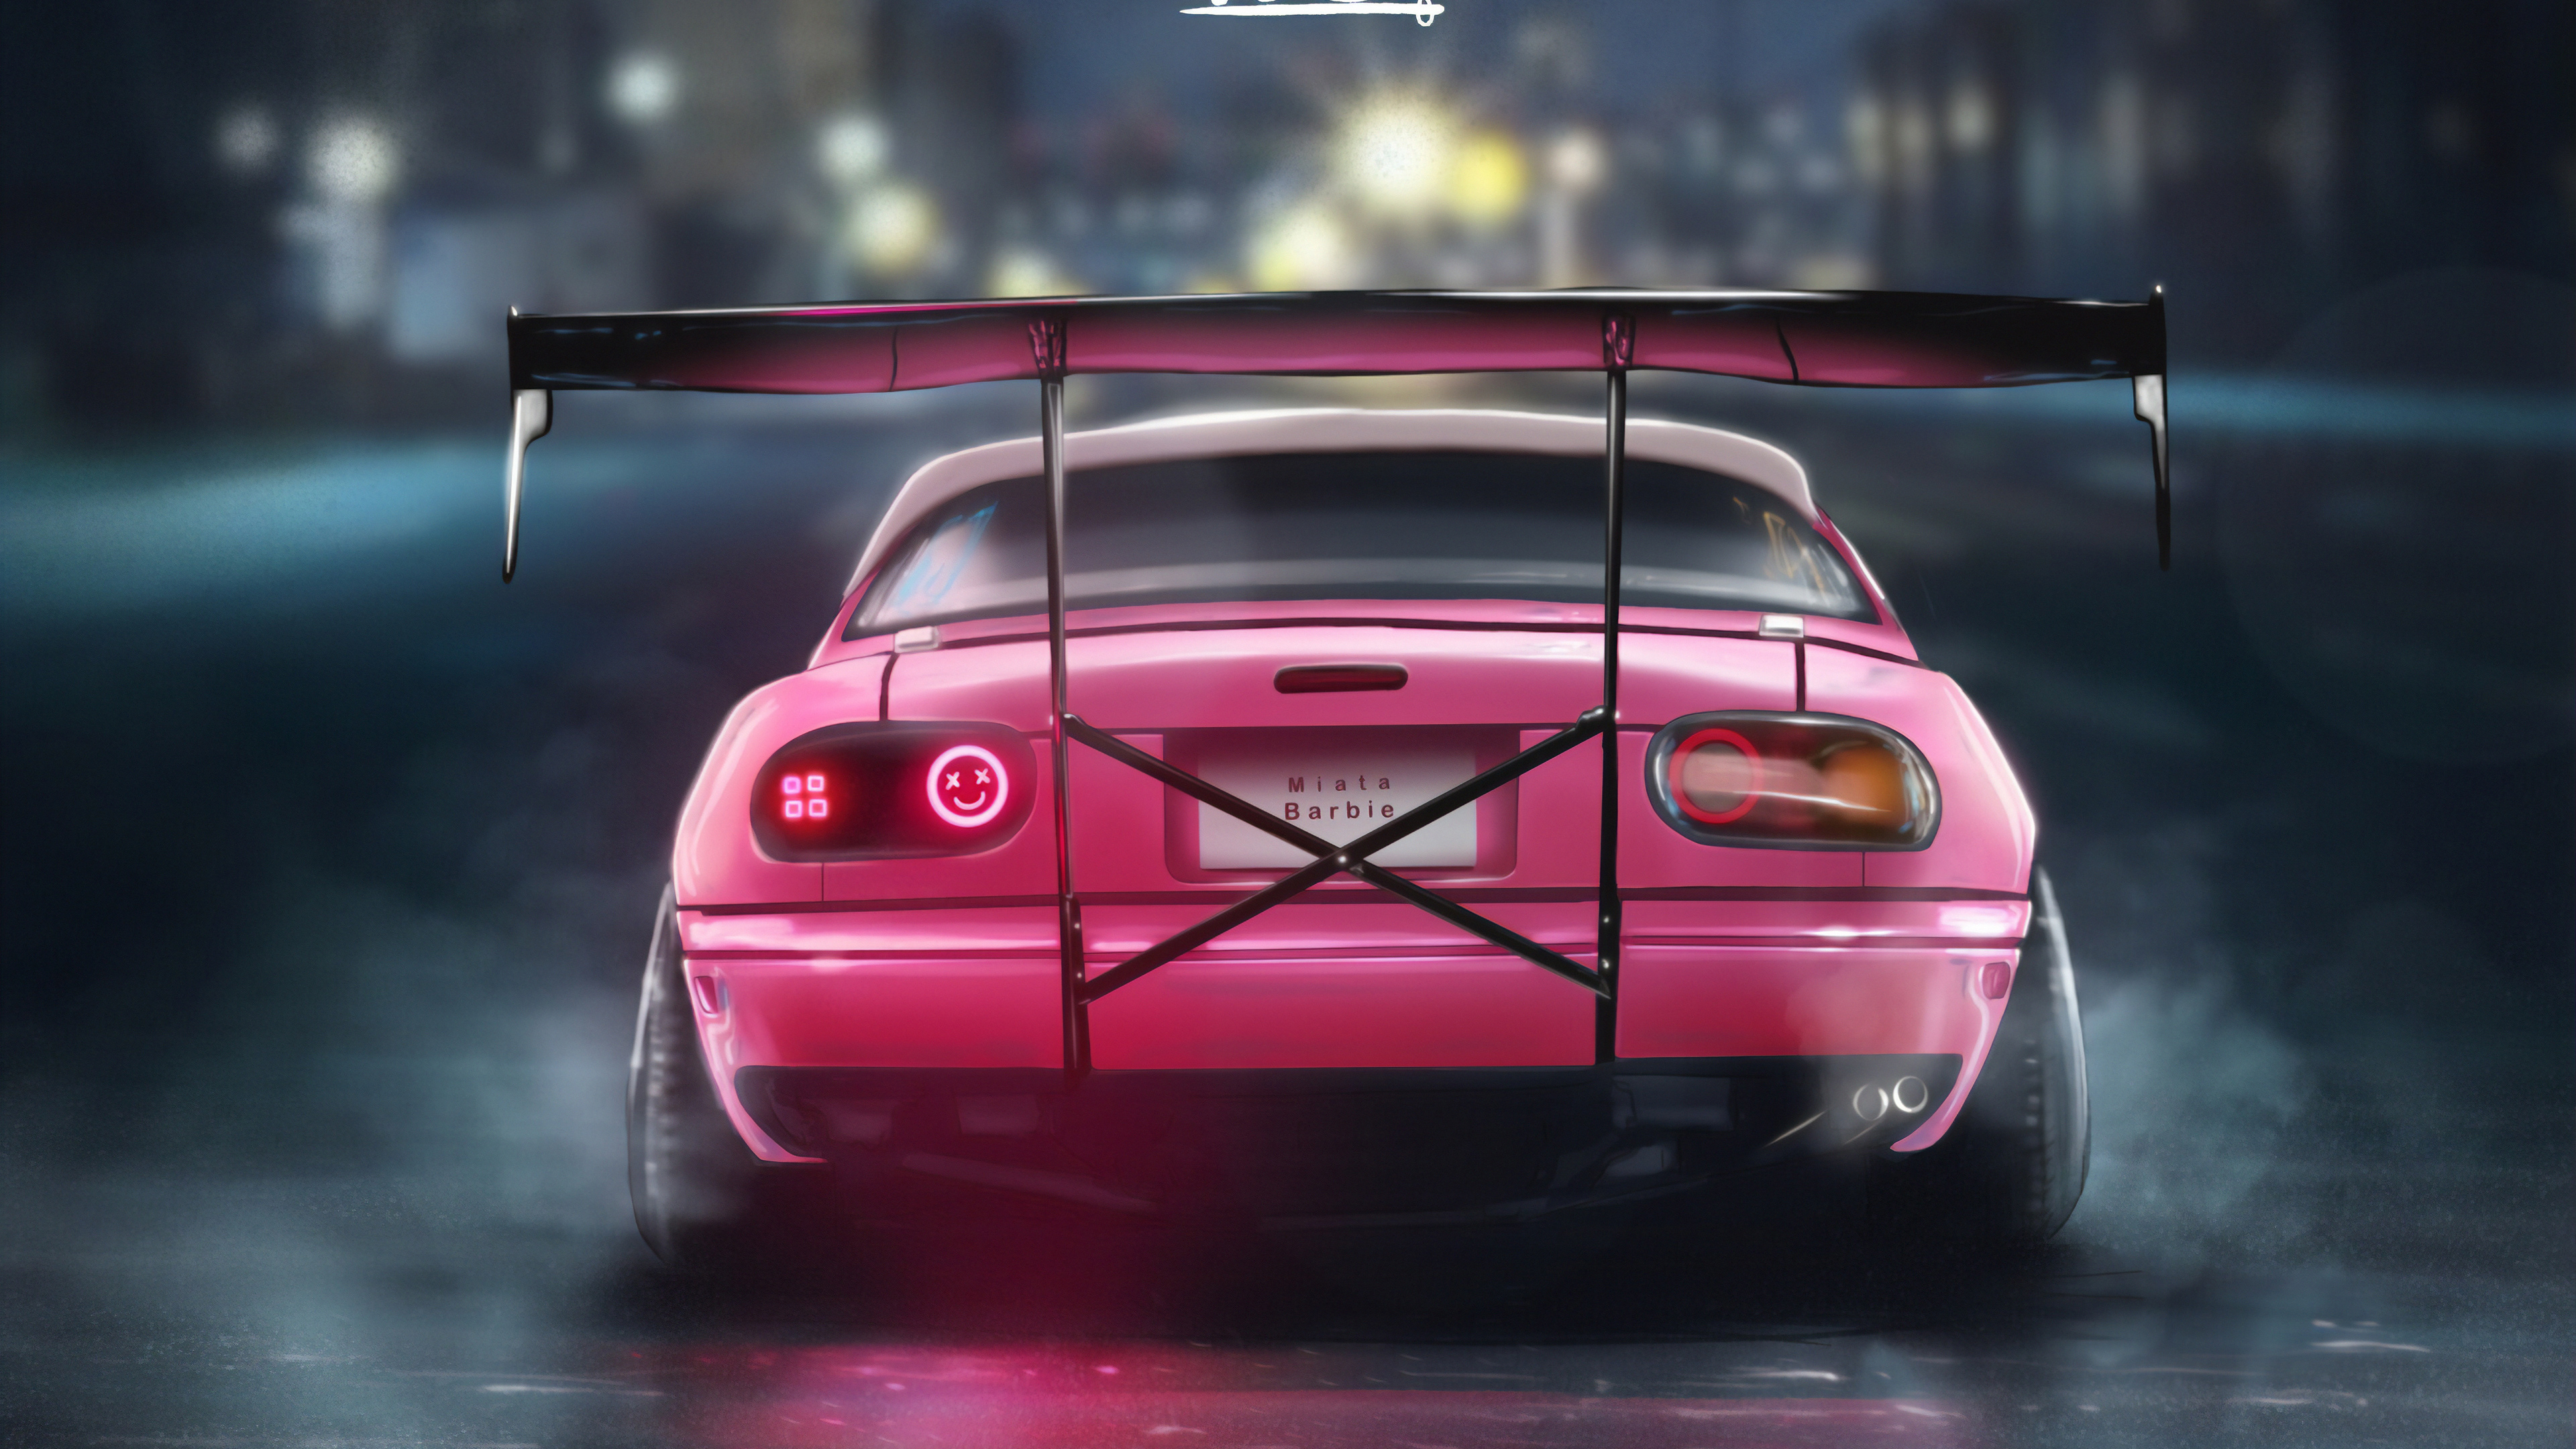 mazda rear 1570392203 - Mazda Rear - mazda wallpapers, hd-wallpapers, cars wallpapers, artist wallpapers, arstation wallpapers, 4k-wallpapers